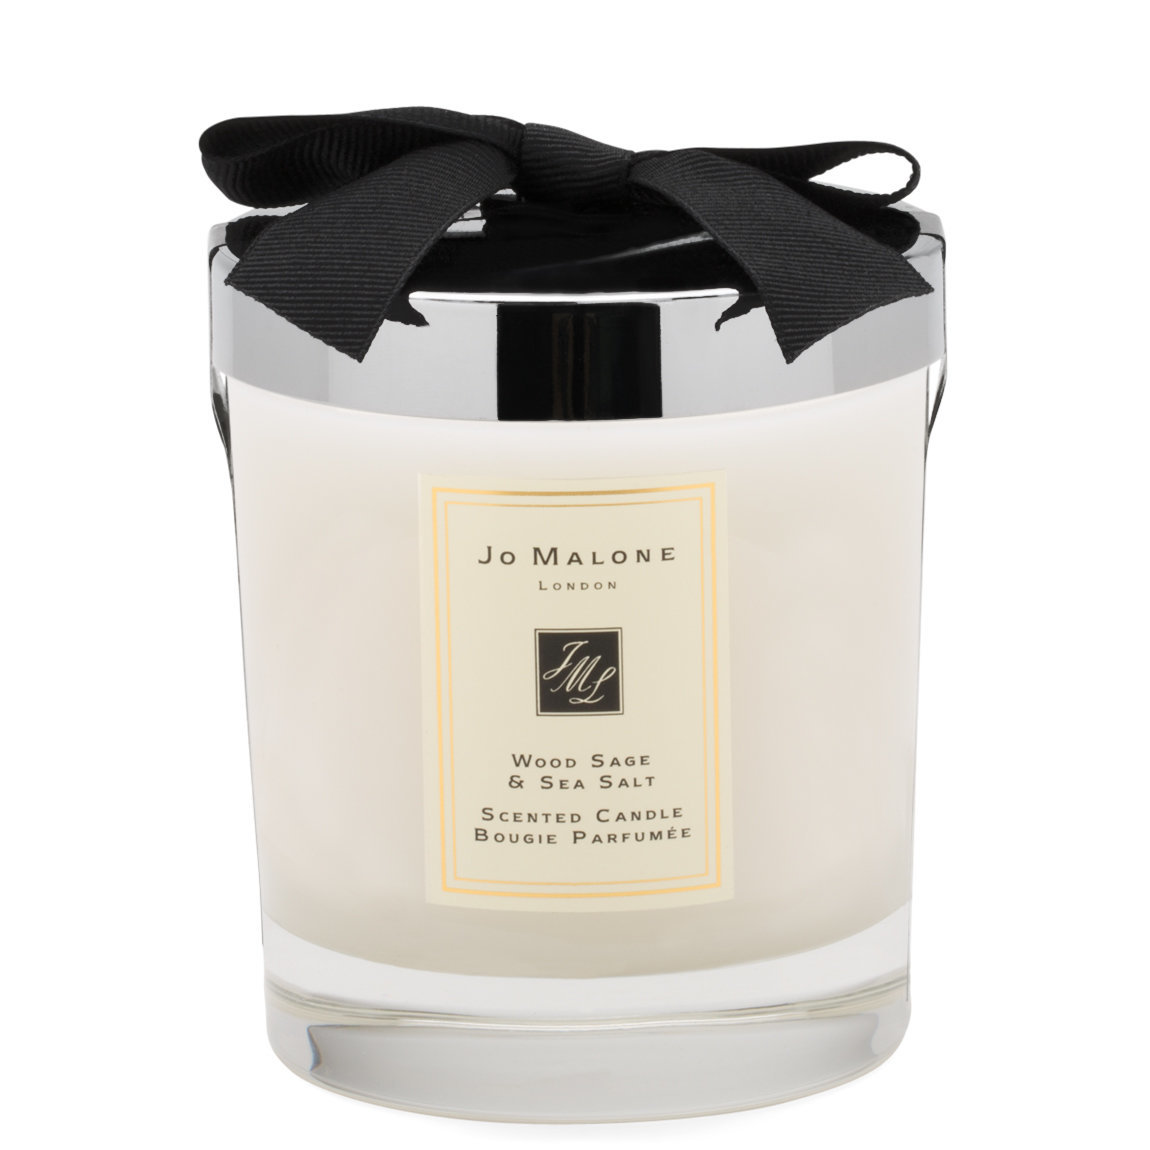 Jo Malone London Wood Sage & Sea Salt Scented Candle alternative view 1 - product swatch.